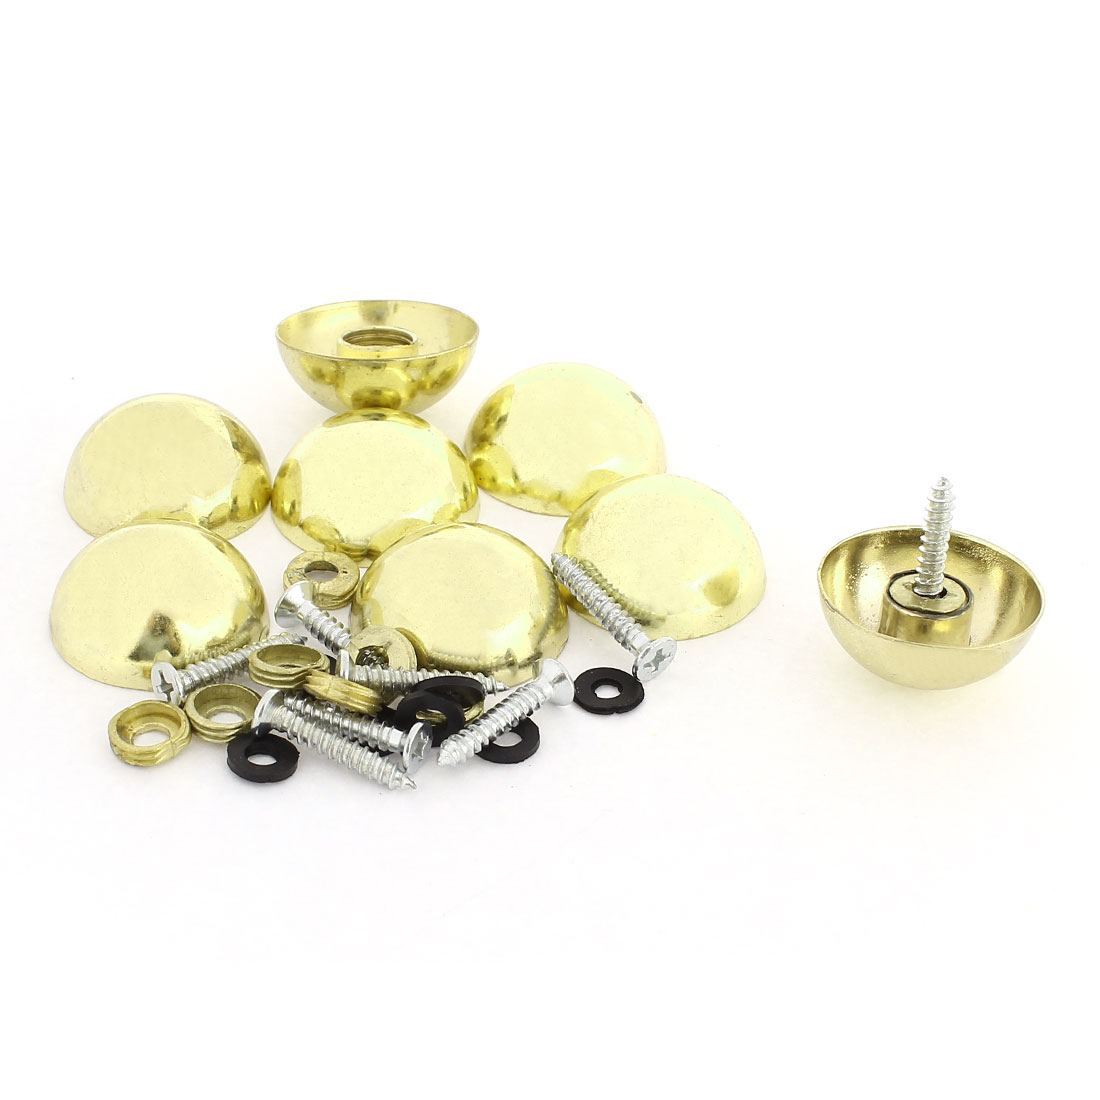 8 Pcs 27mm Dia 16mm Height Zinc Alloy Dome Screw Mirror Fittings Cap Gold Tone